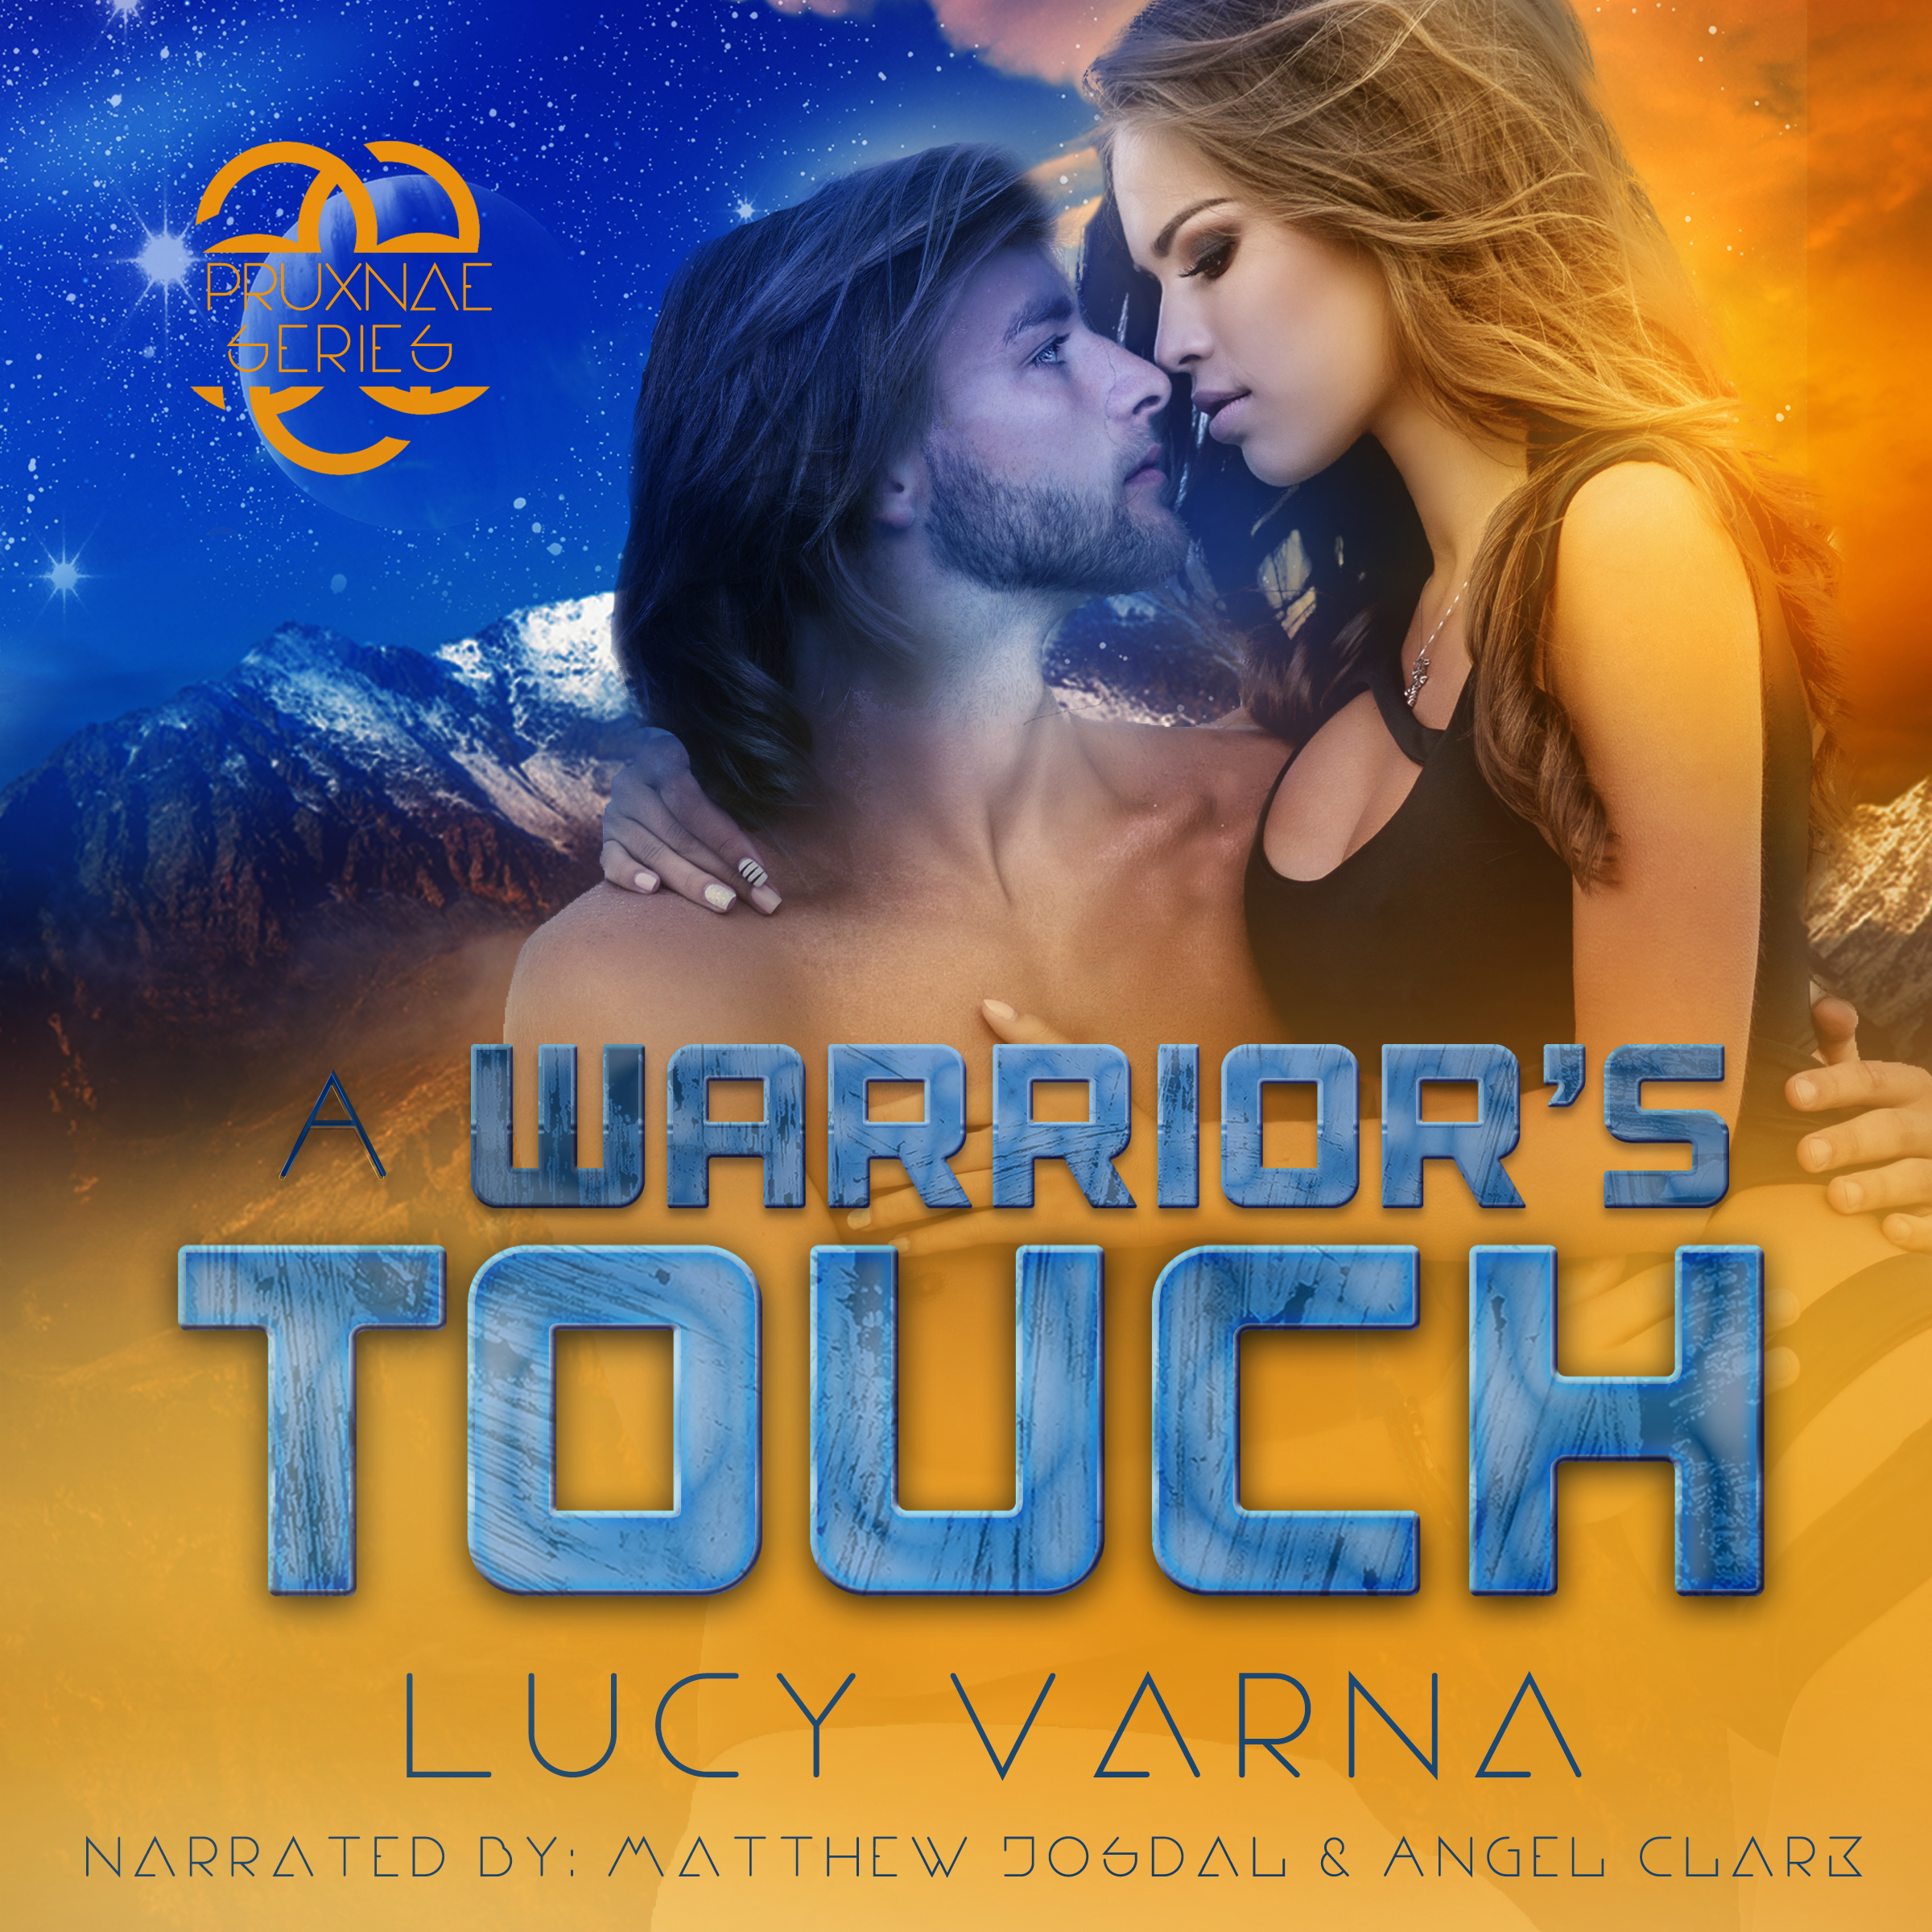 A Warrior's Touch (The Pruxnae, Book 4) by Lucy Varna